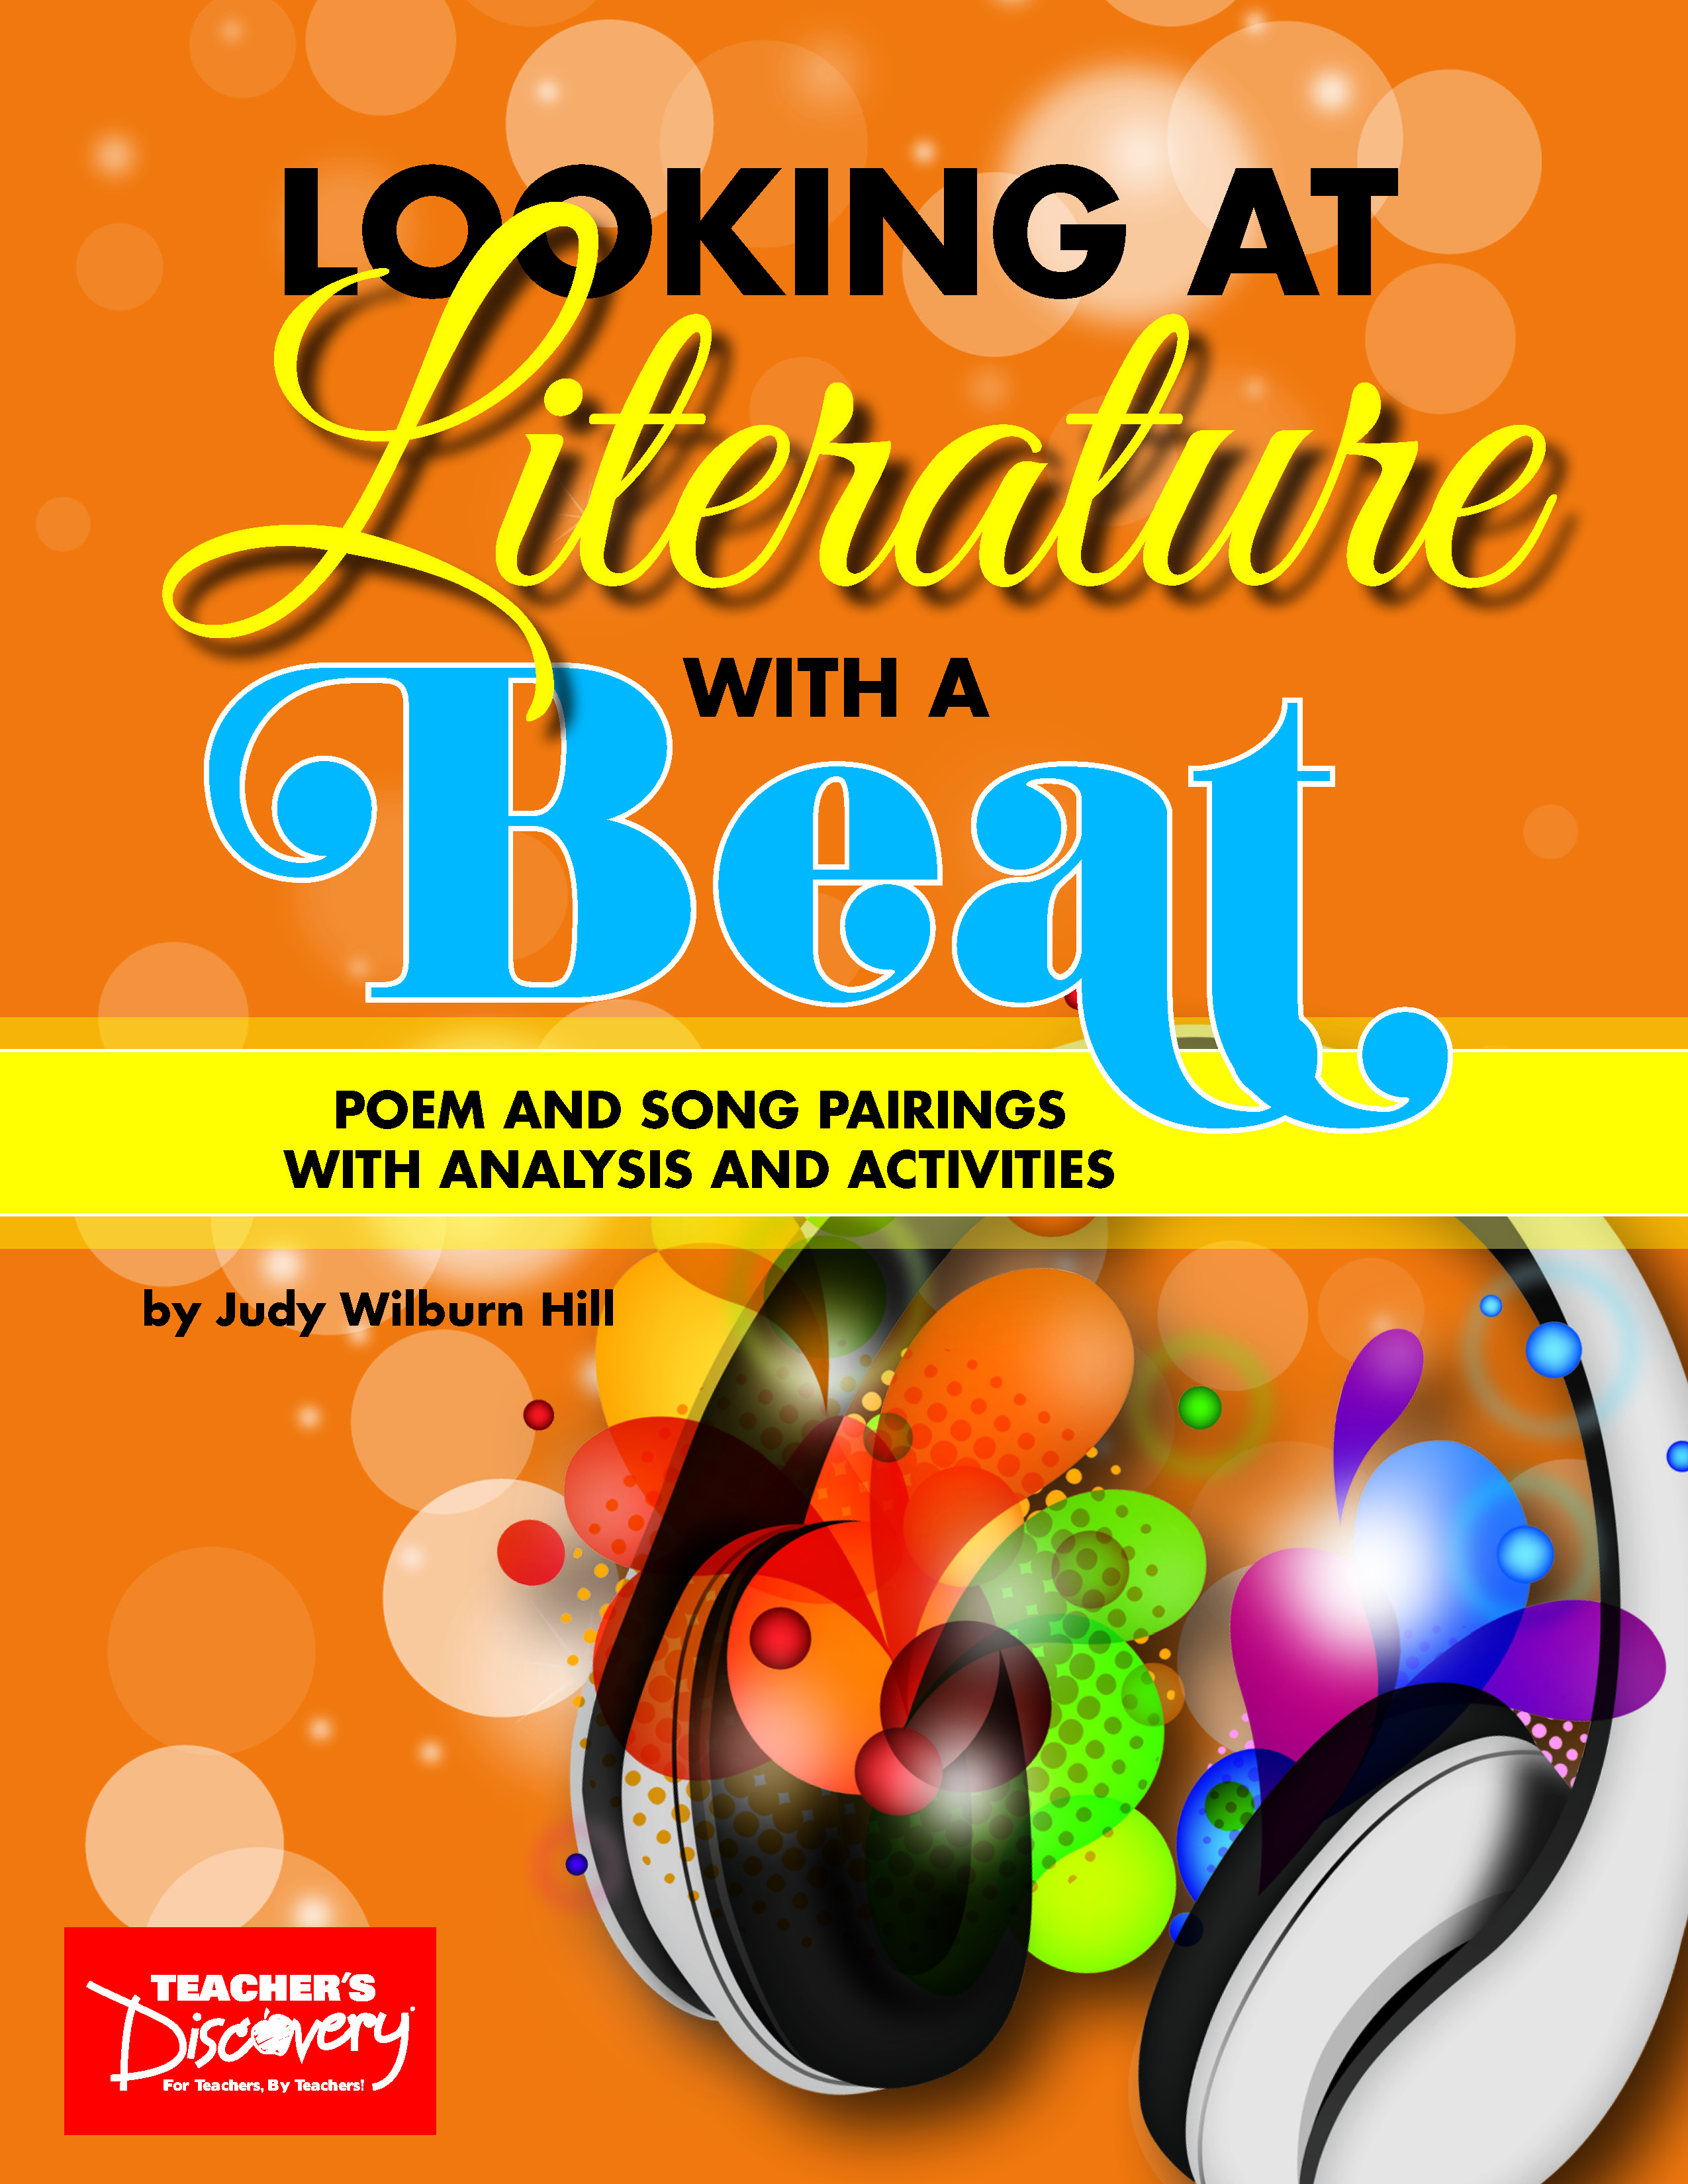 Looking at Literature with a Beat: Poem and Song Pairings Analysis and Activities Book